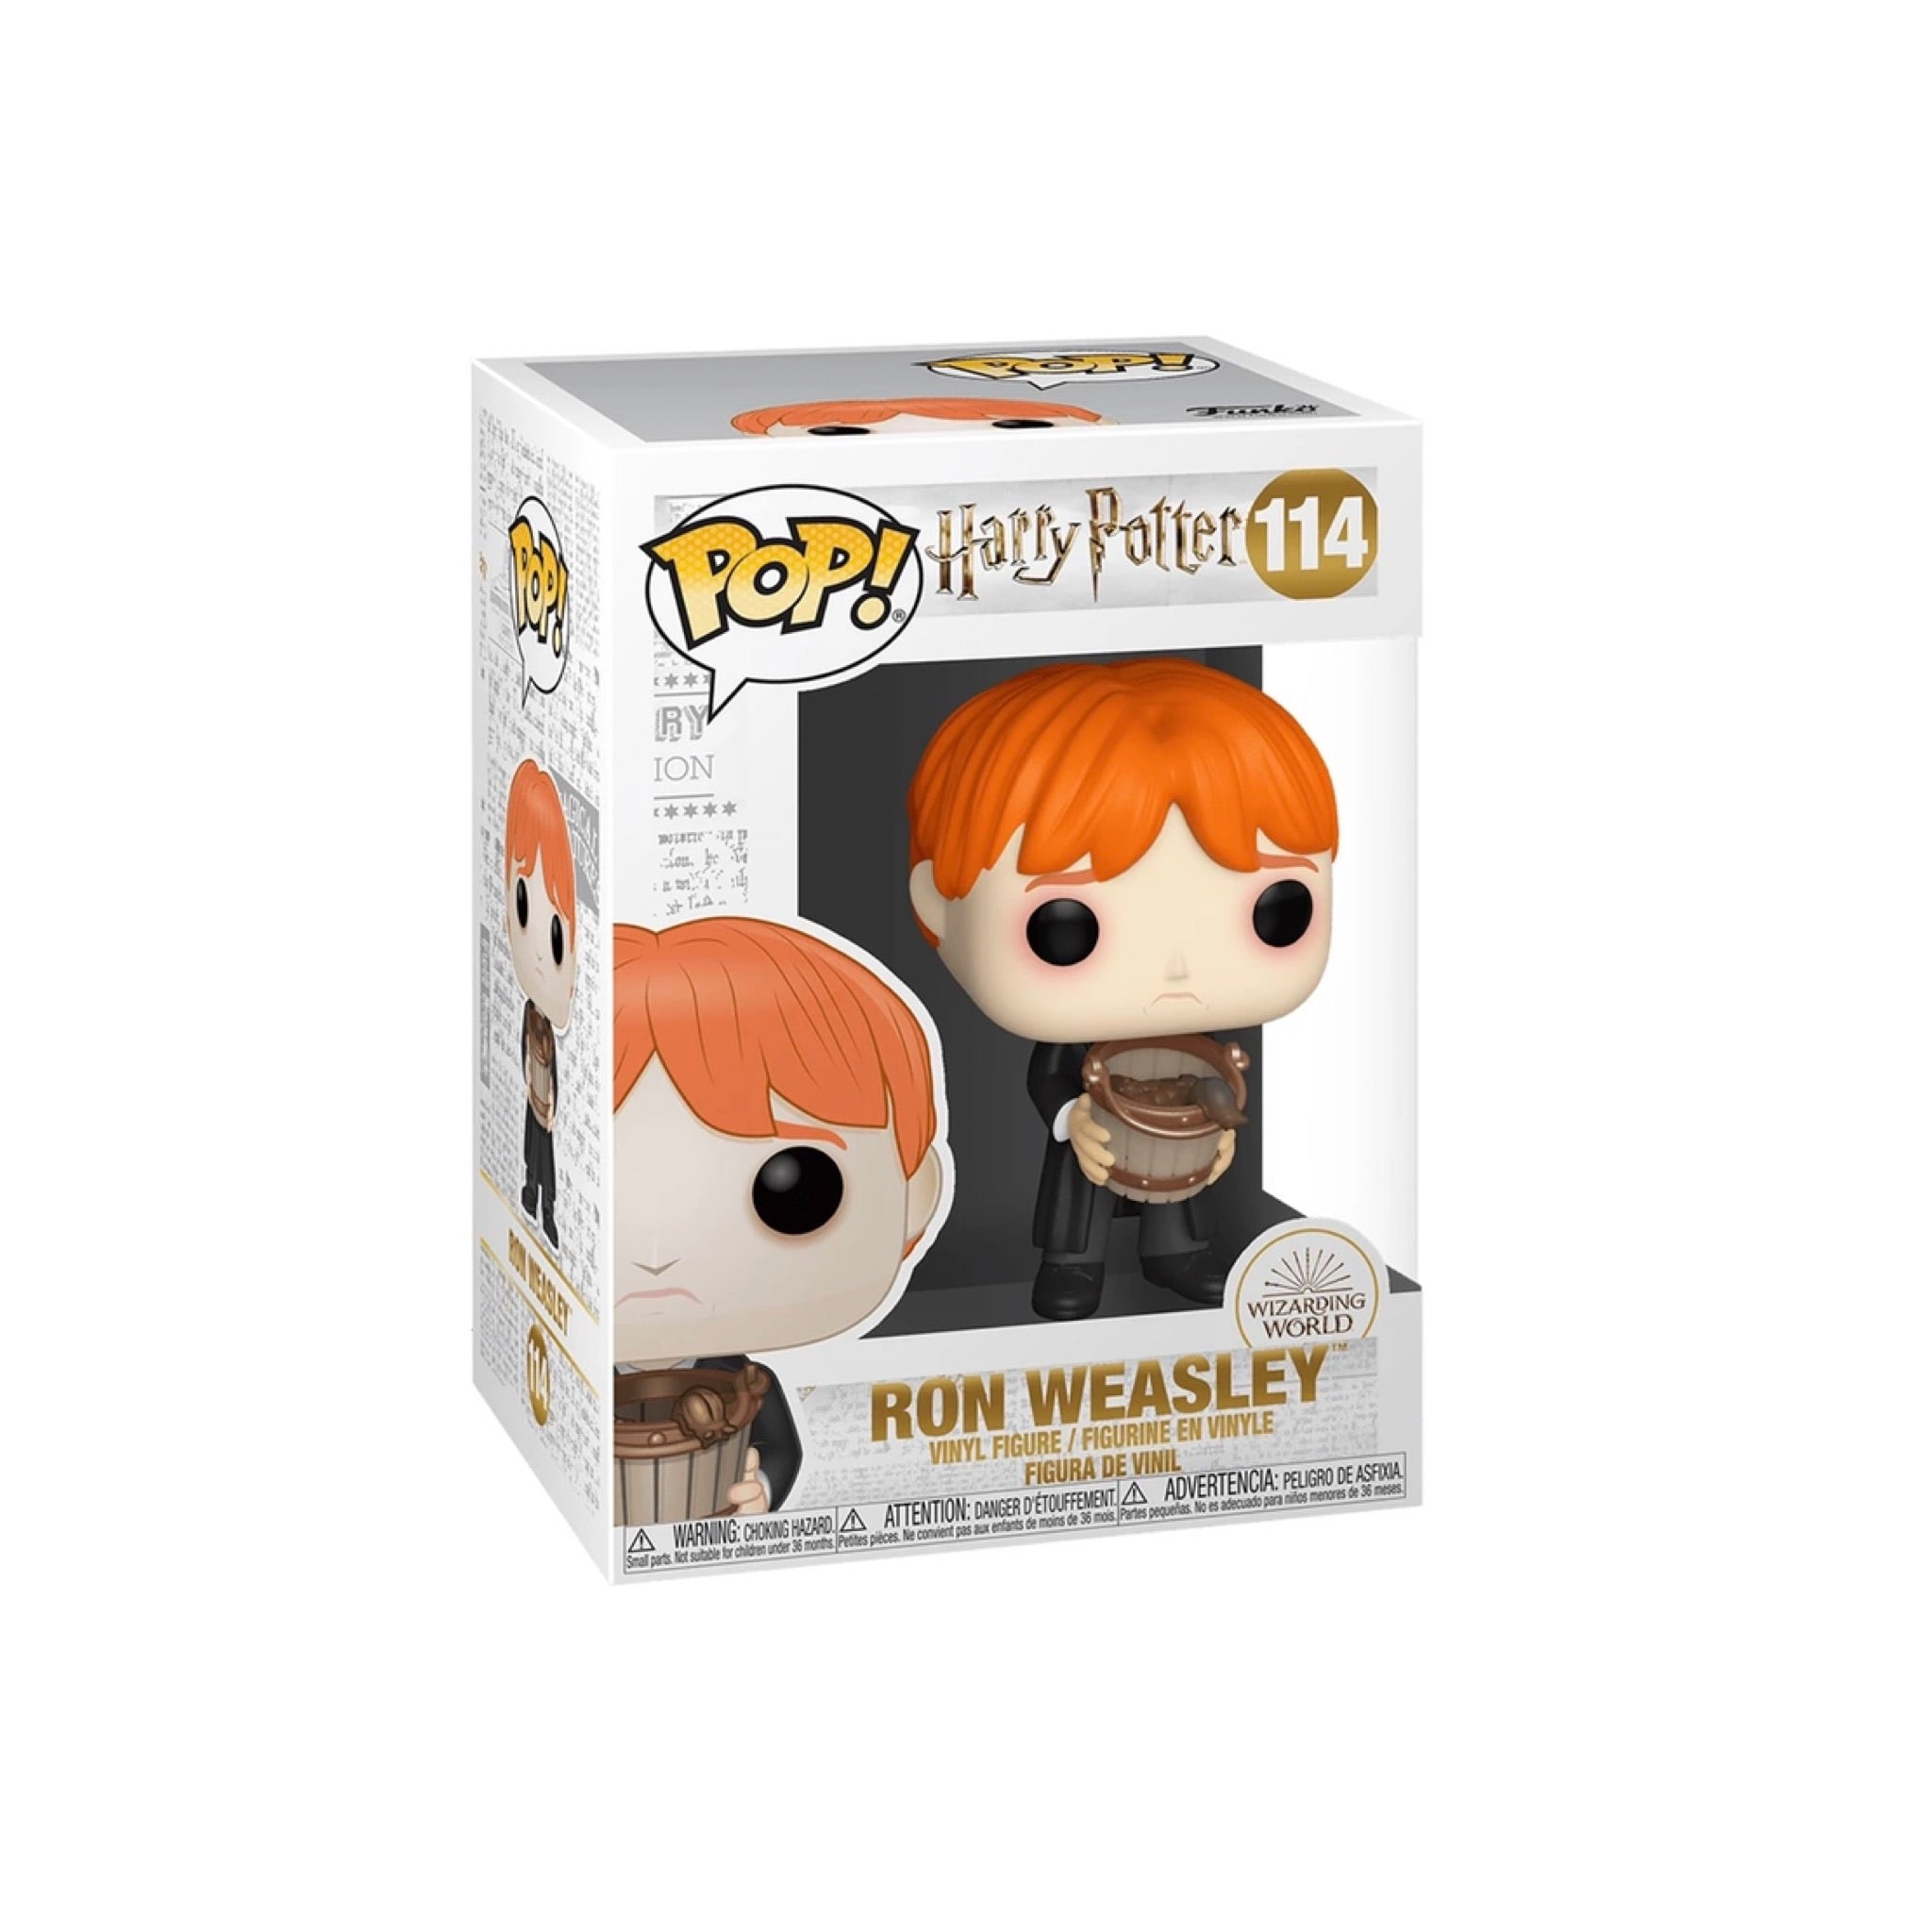 Funko Pop Vinyl Figurine Ron Weasley puking slugs #114 - Harry Potter